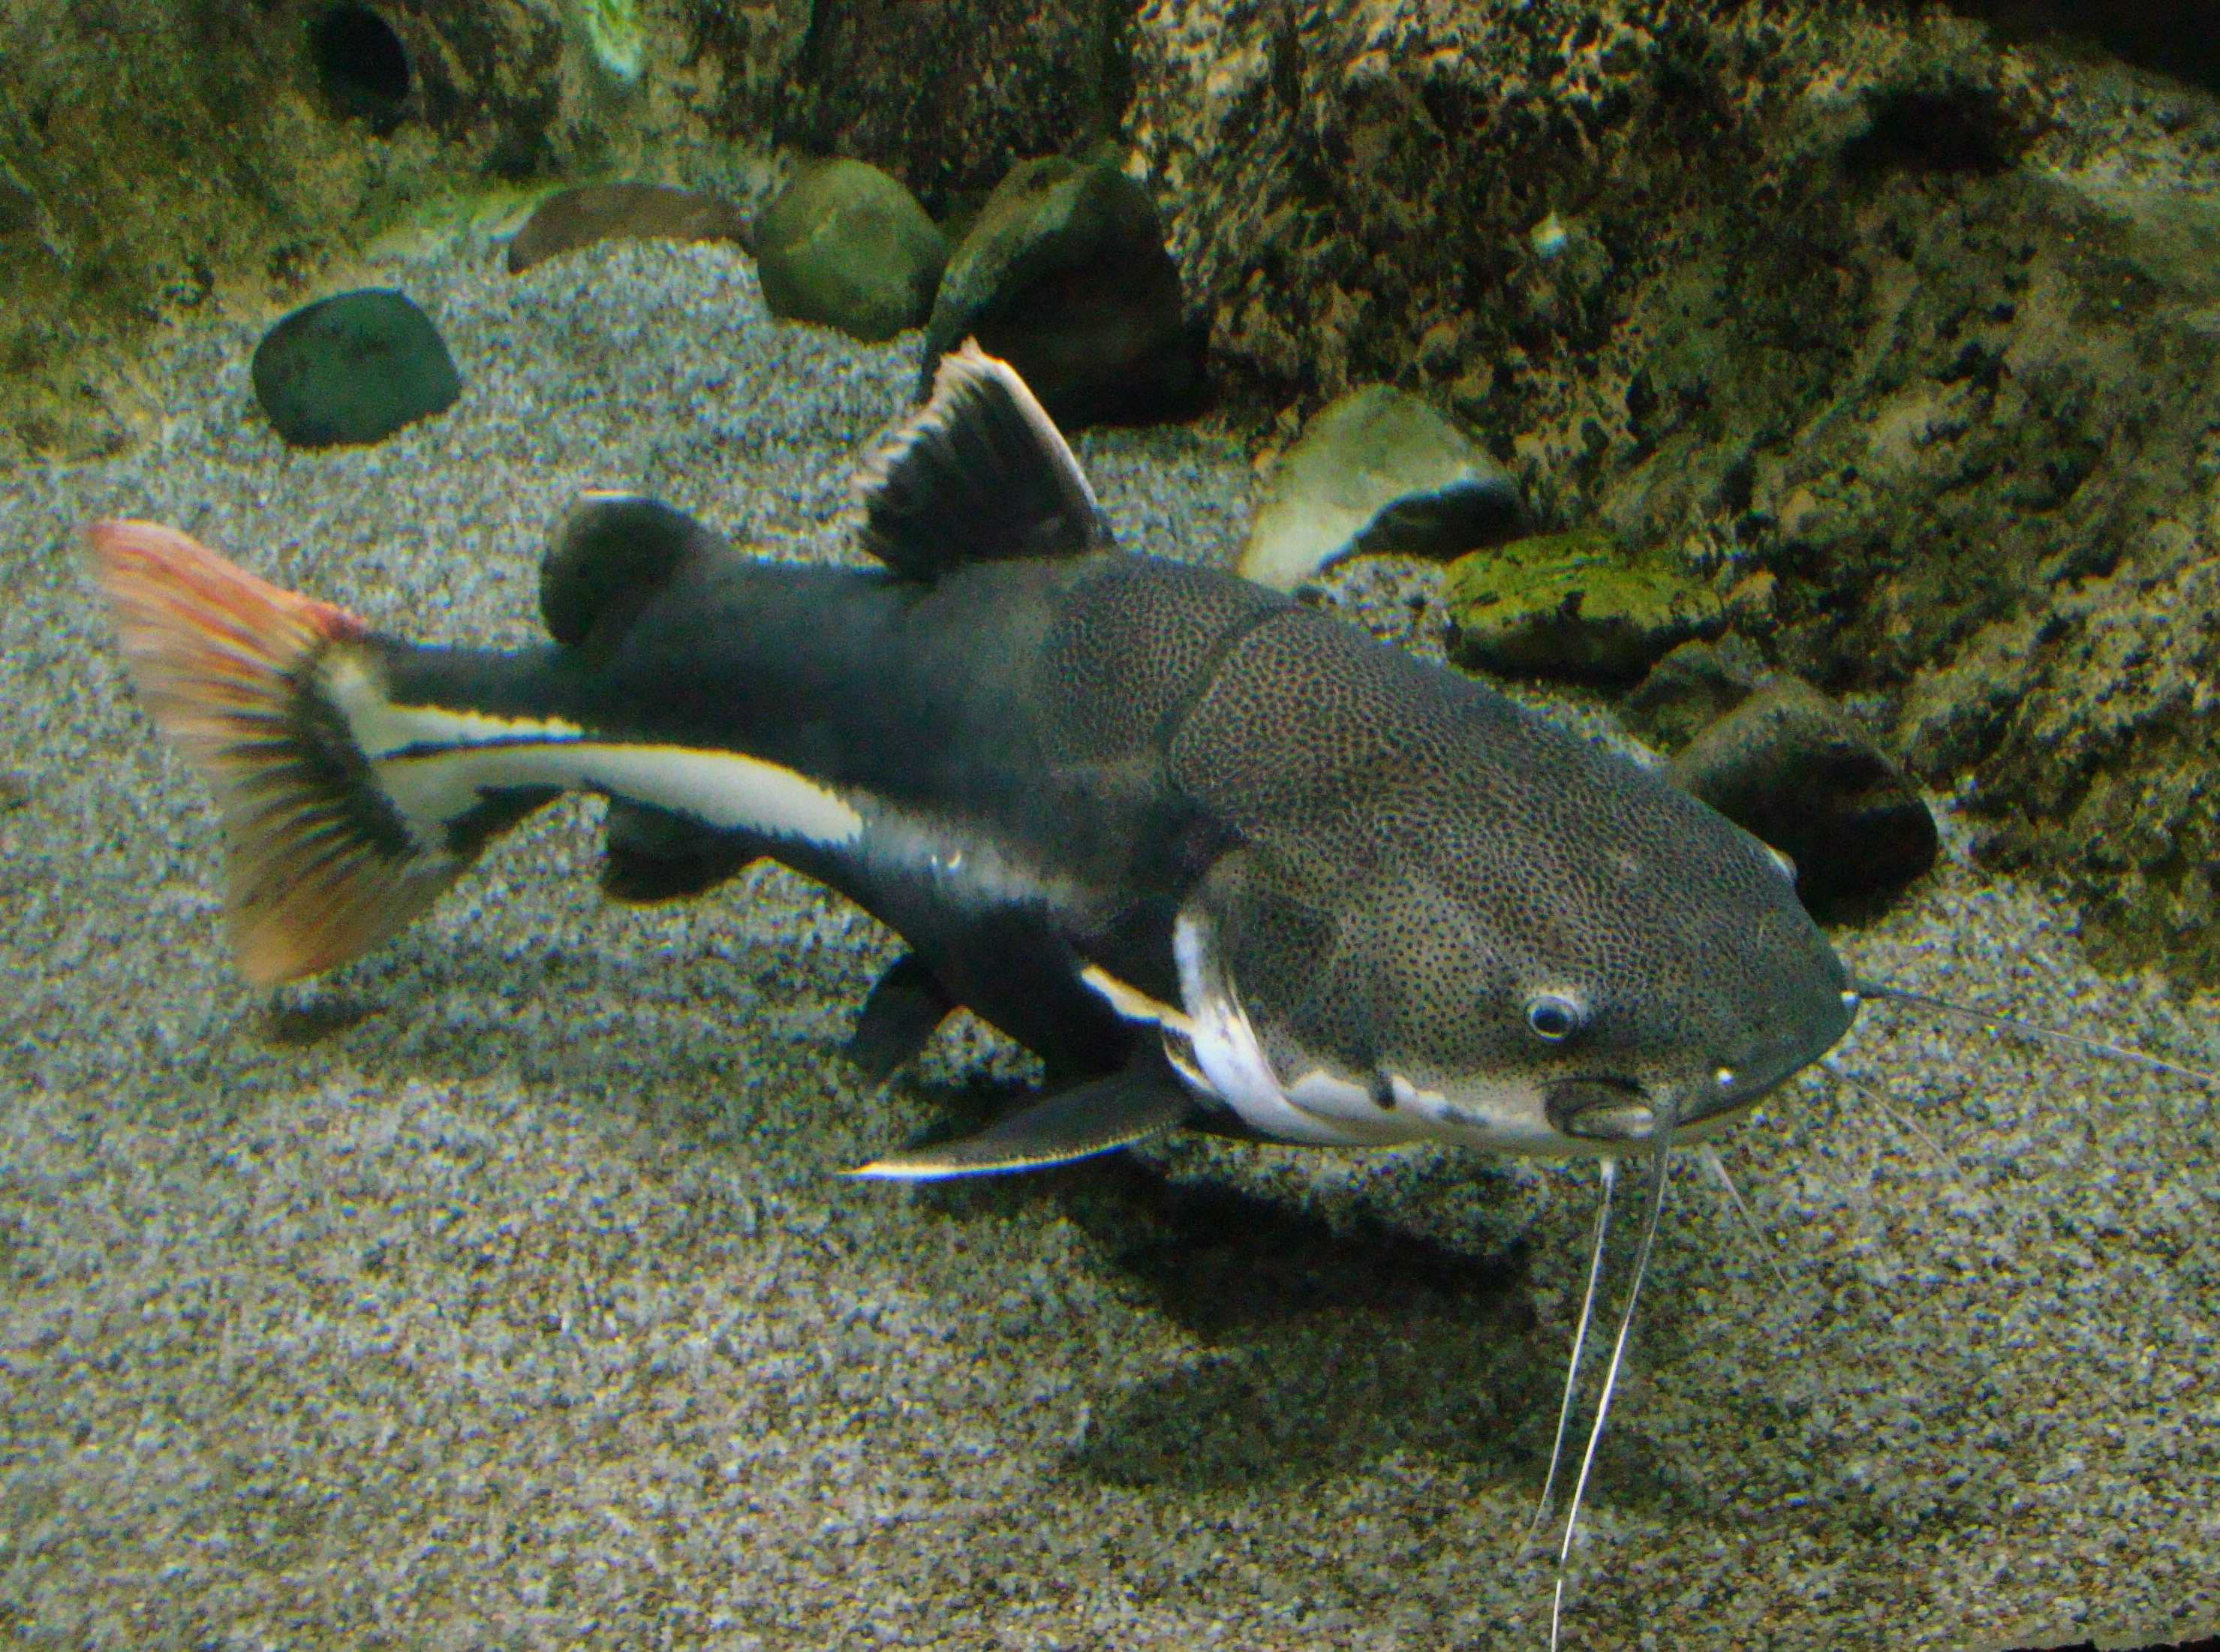 Redtail catfish swimming in tank